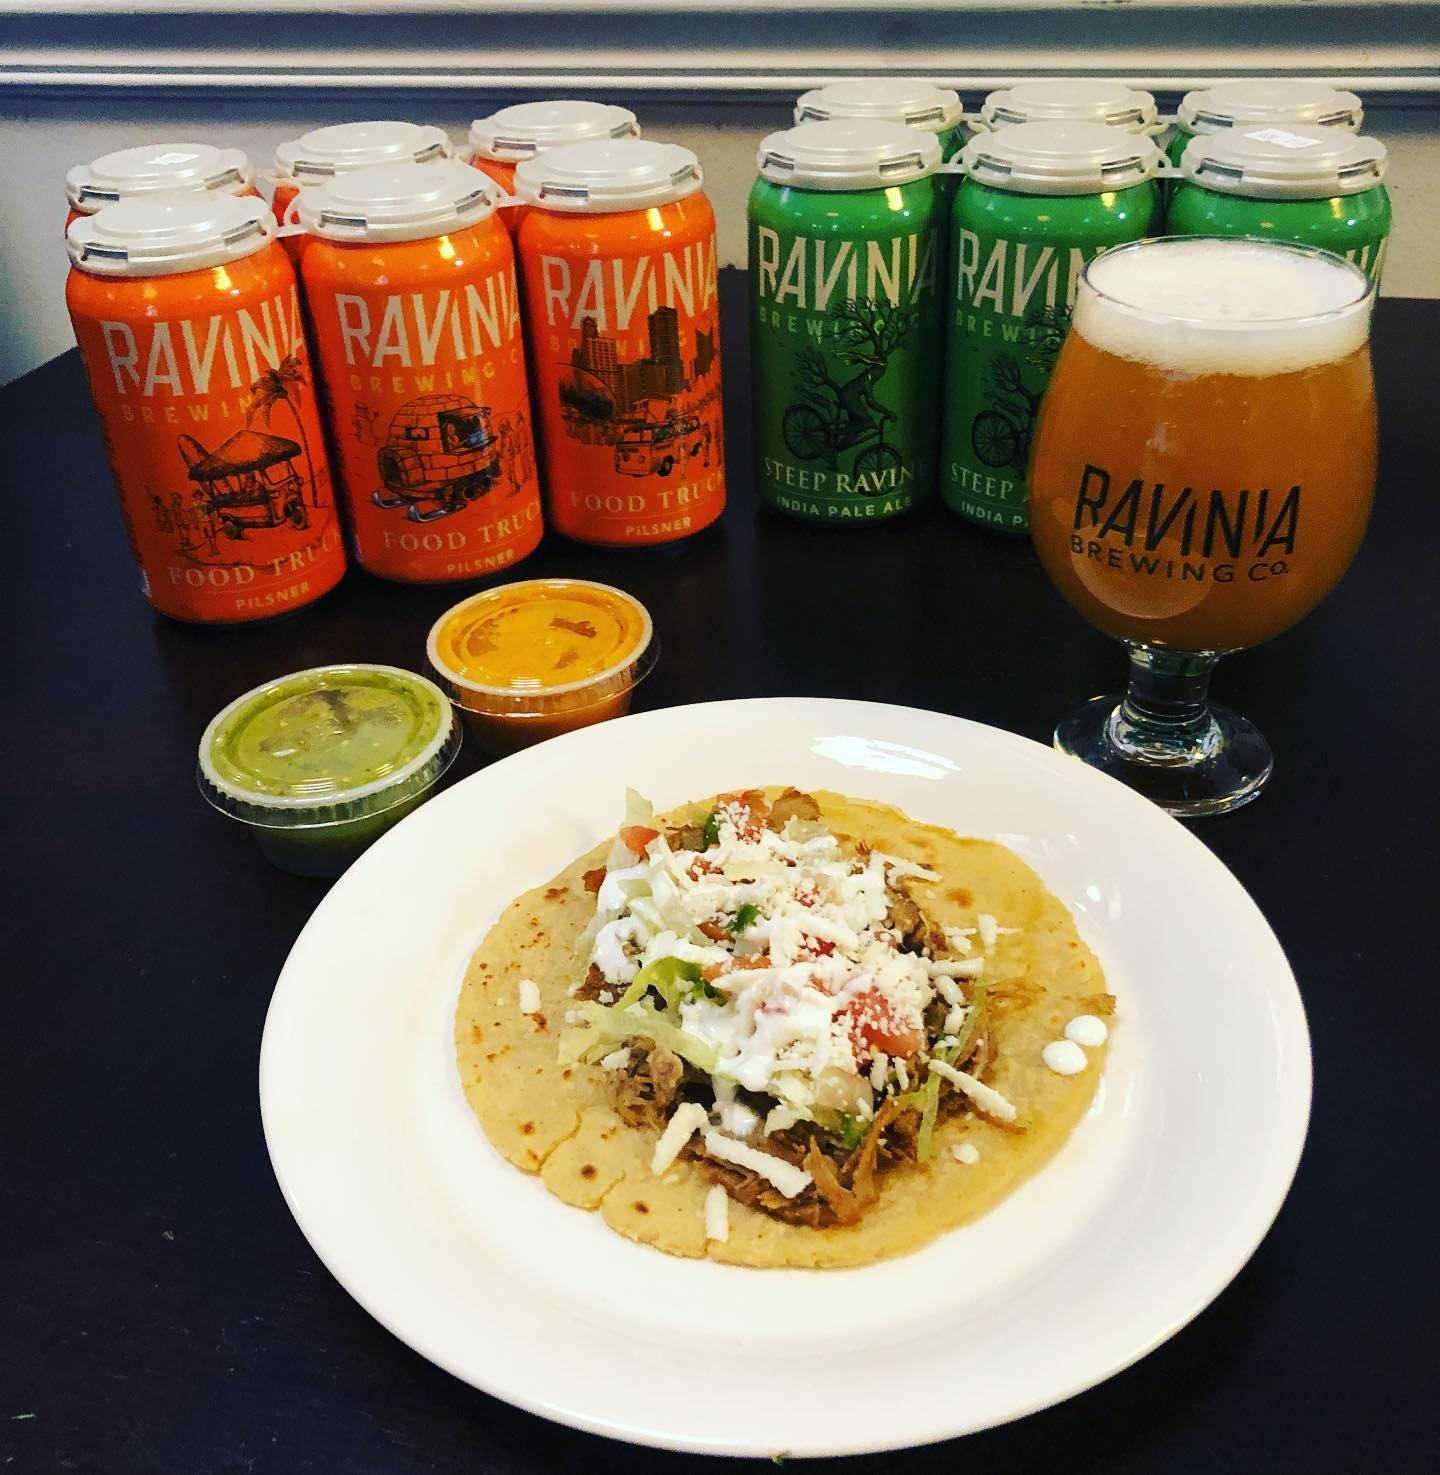 Ravinia Brewing - TACOS AND BEER